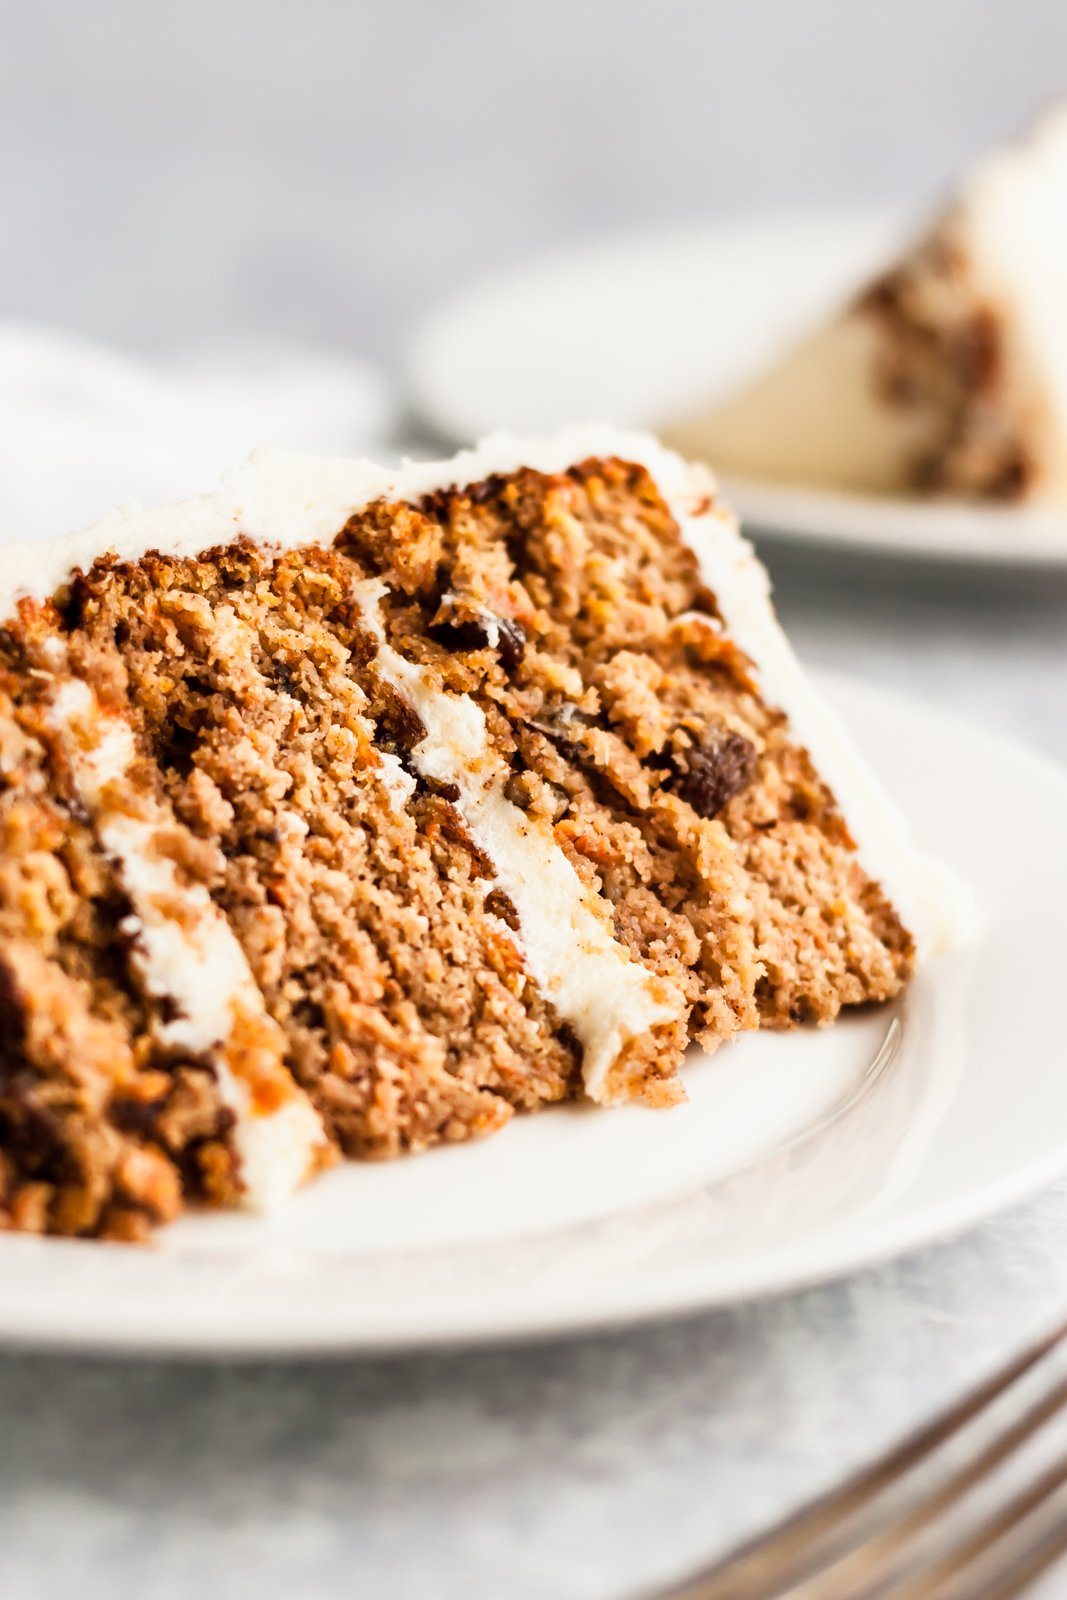 slice of healthy gluten free carrot cake on a plate